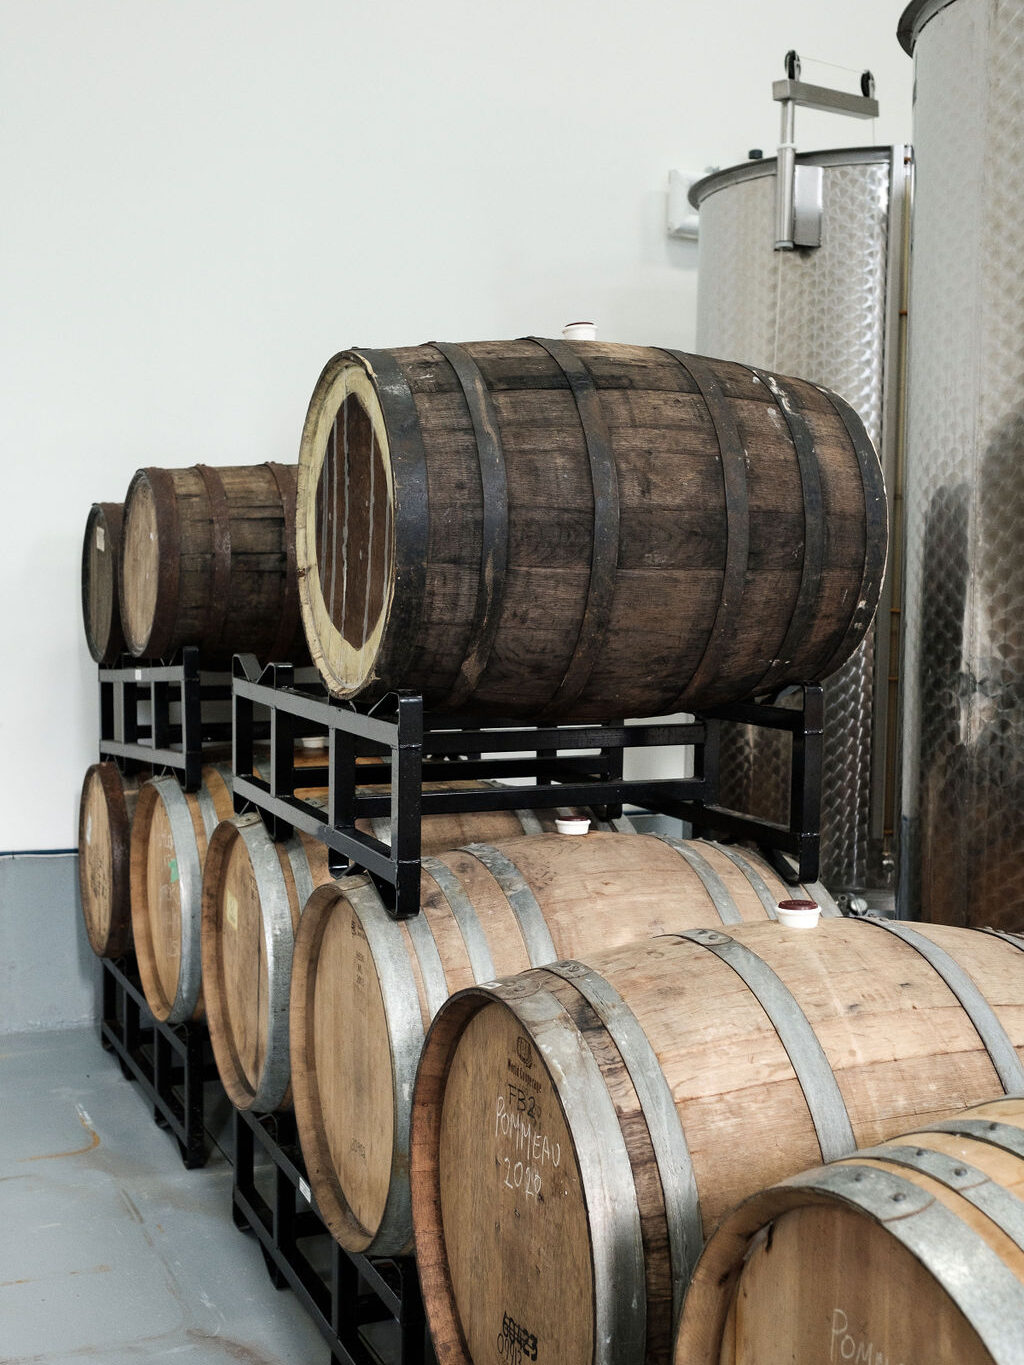 wine barrels and stainless tanks fermenting and ageing cider